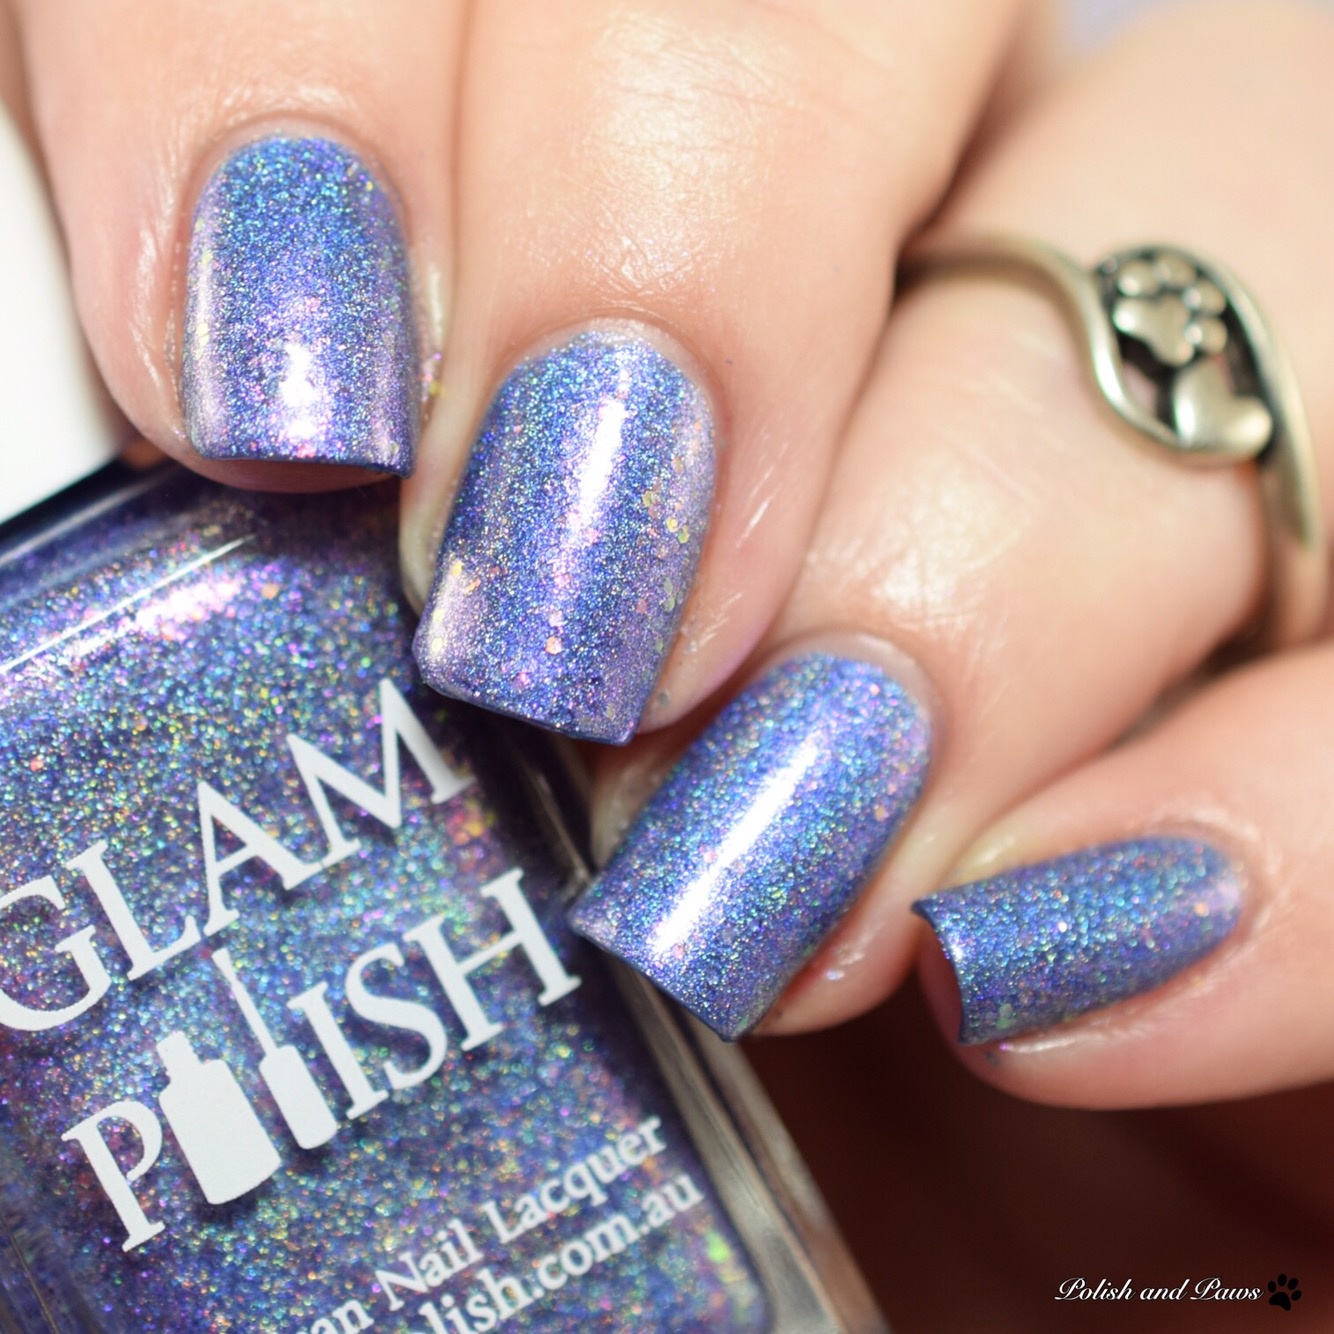 Glam Polish The Glitter Menace